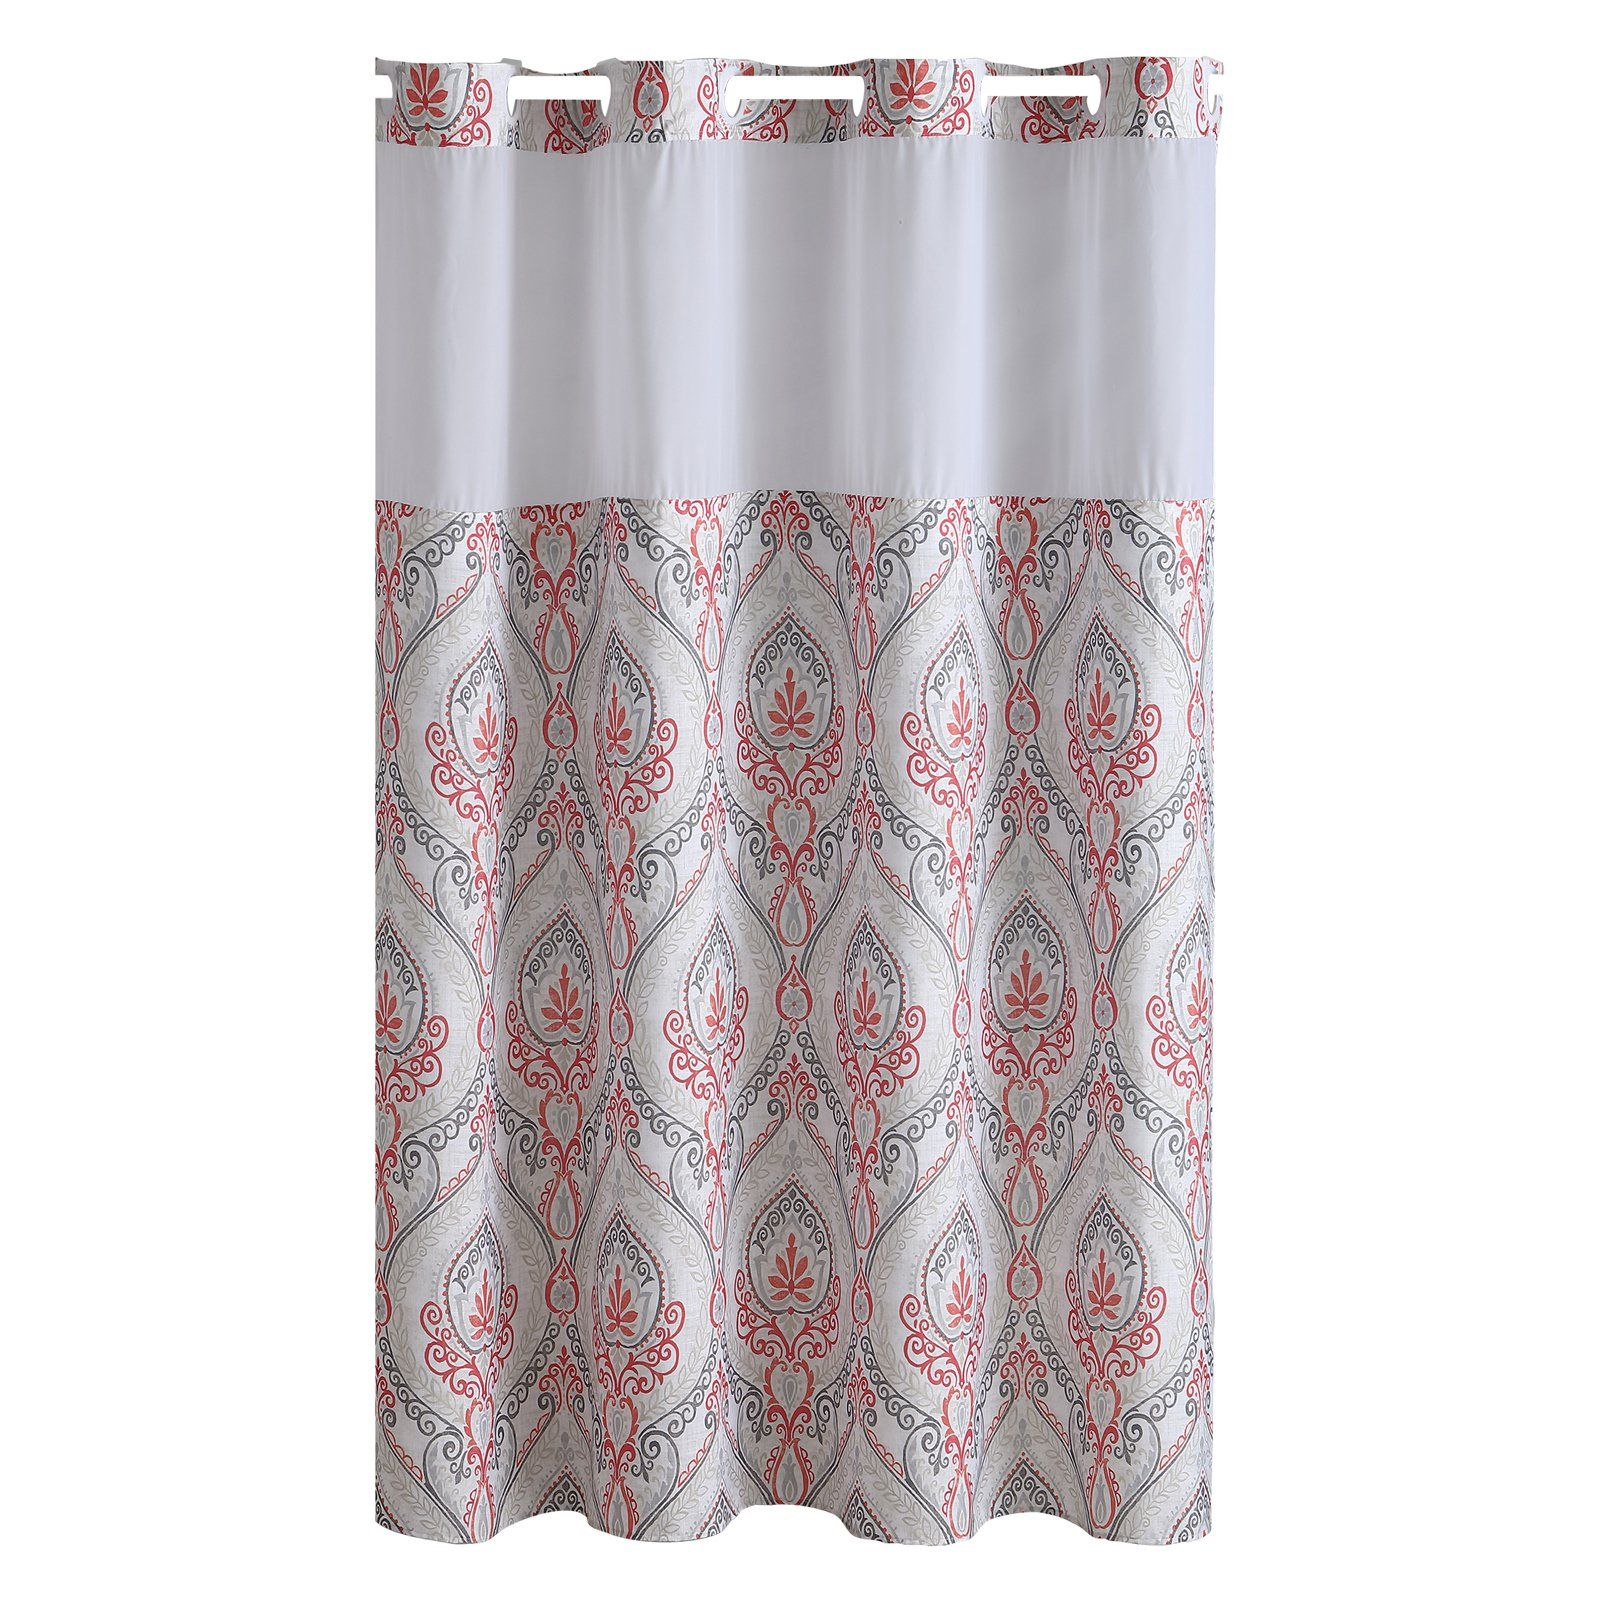 Hookless French Damask Print Polyester Shower Curtain Printed Shower Curtain Pretty Shower Curtains Gray Bathroom Accessories